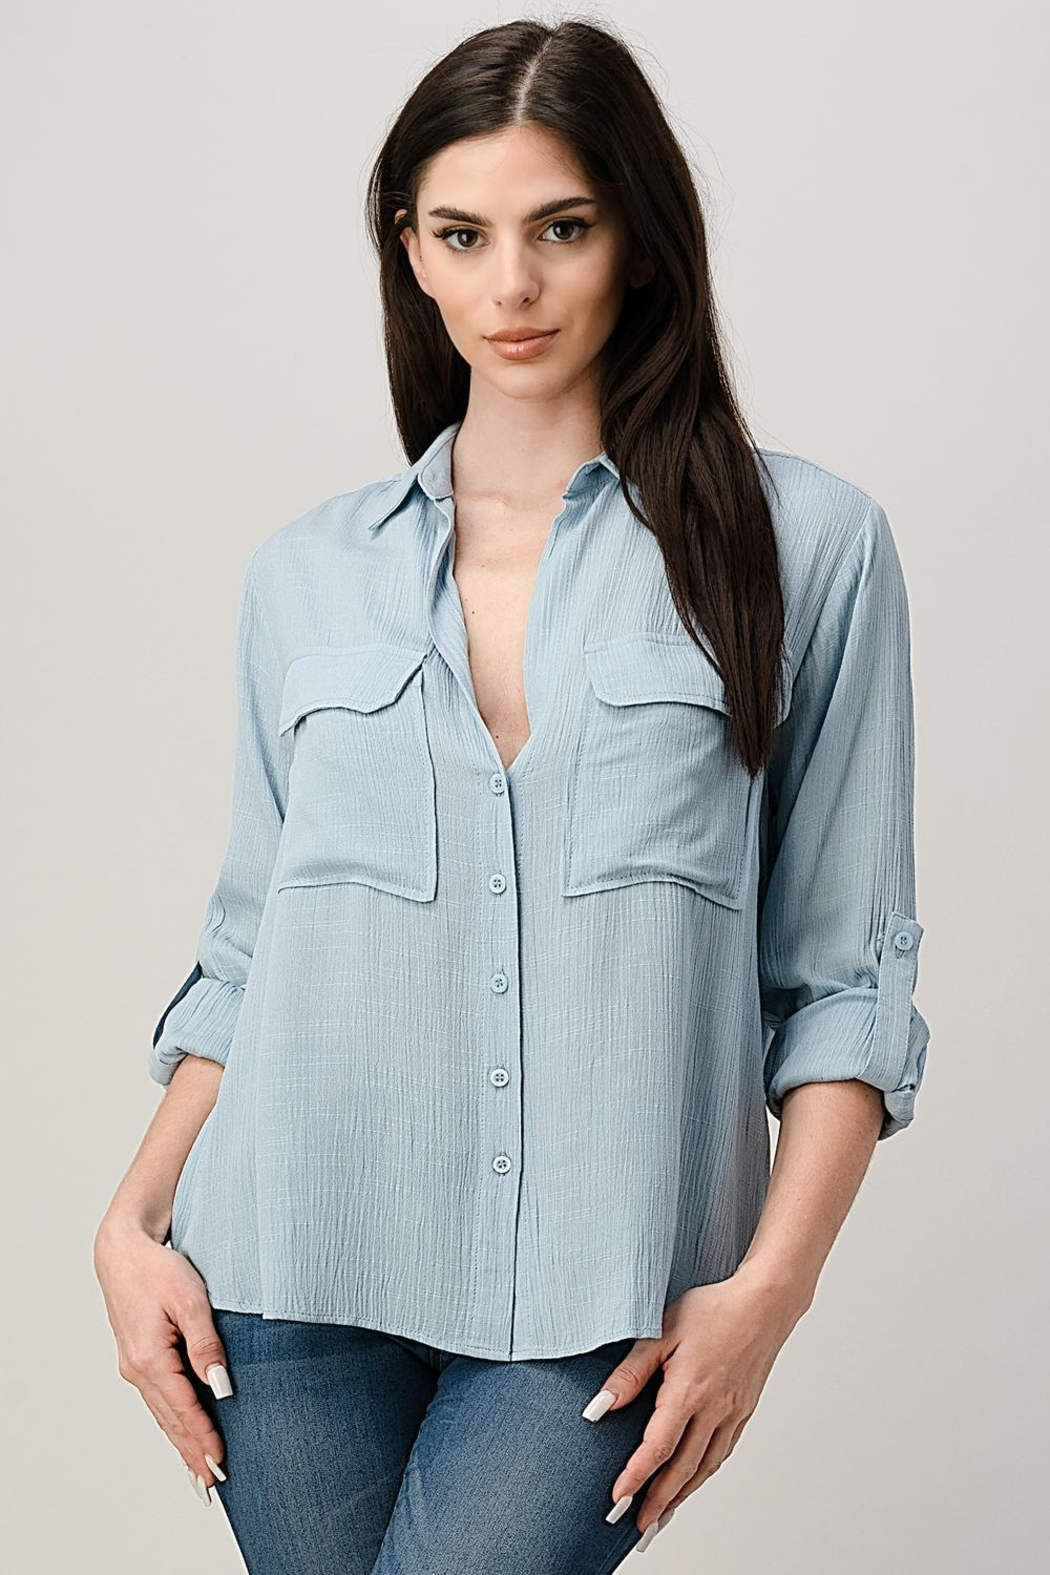 Miley and Molly Two Pocket Roll Up Sleeve Shirt Blouse Top - Main Image